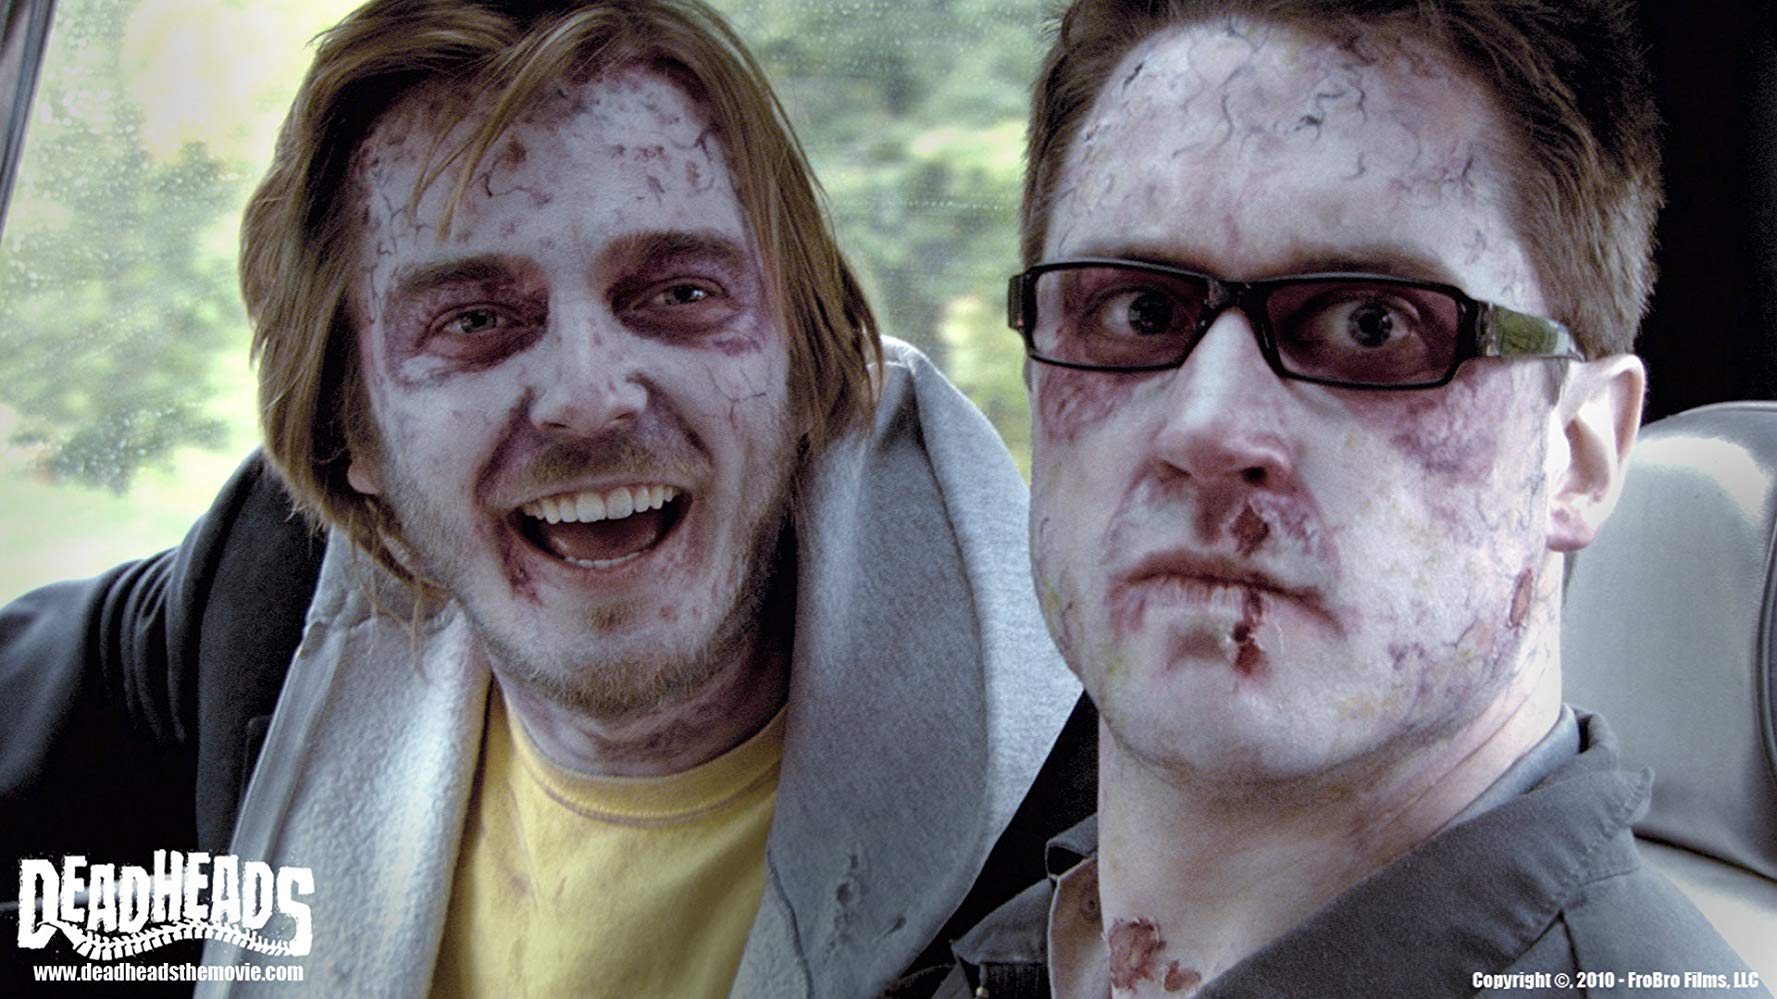 Bromance between two best zombie friends - (l to r) Ross Kidder and Michael McKiddy in Deadheads (2011)